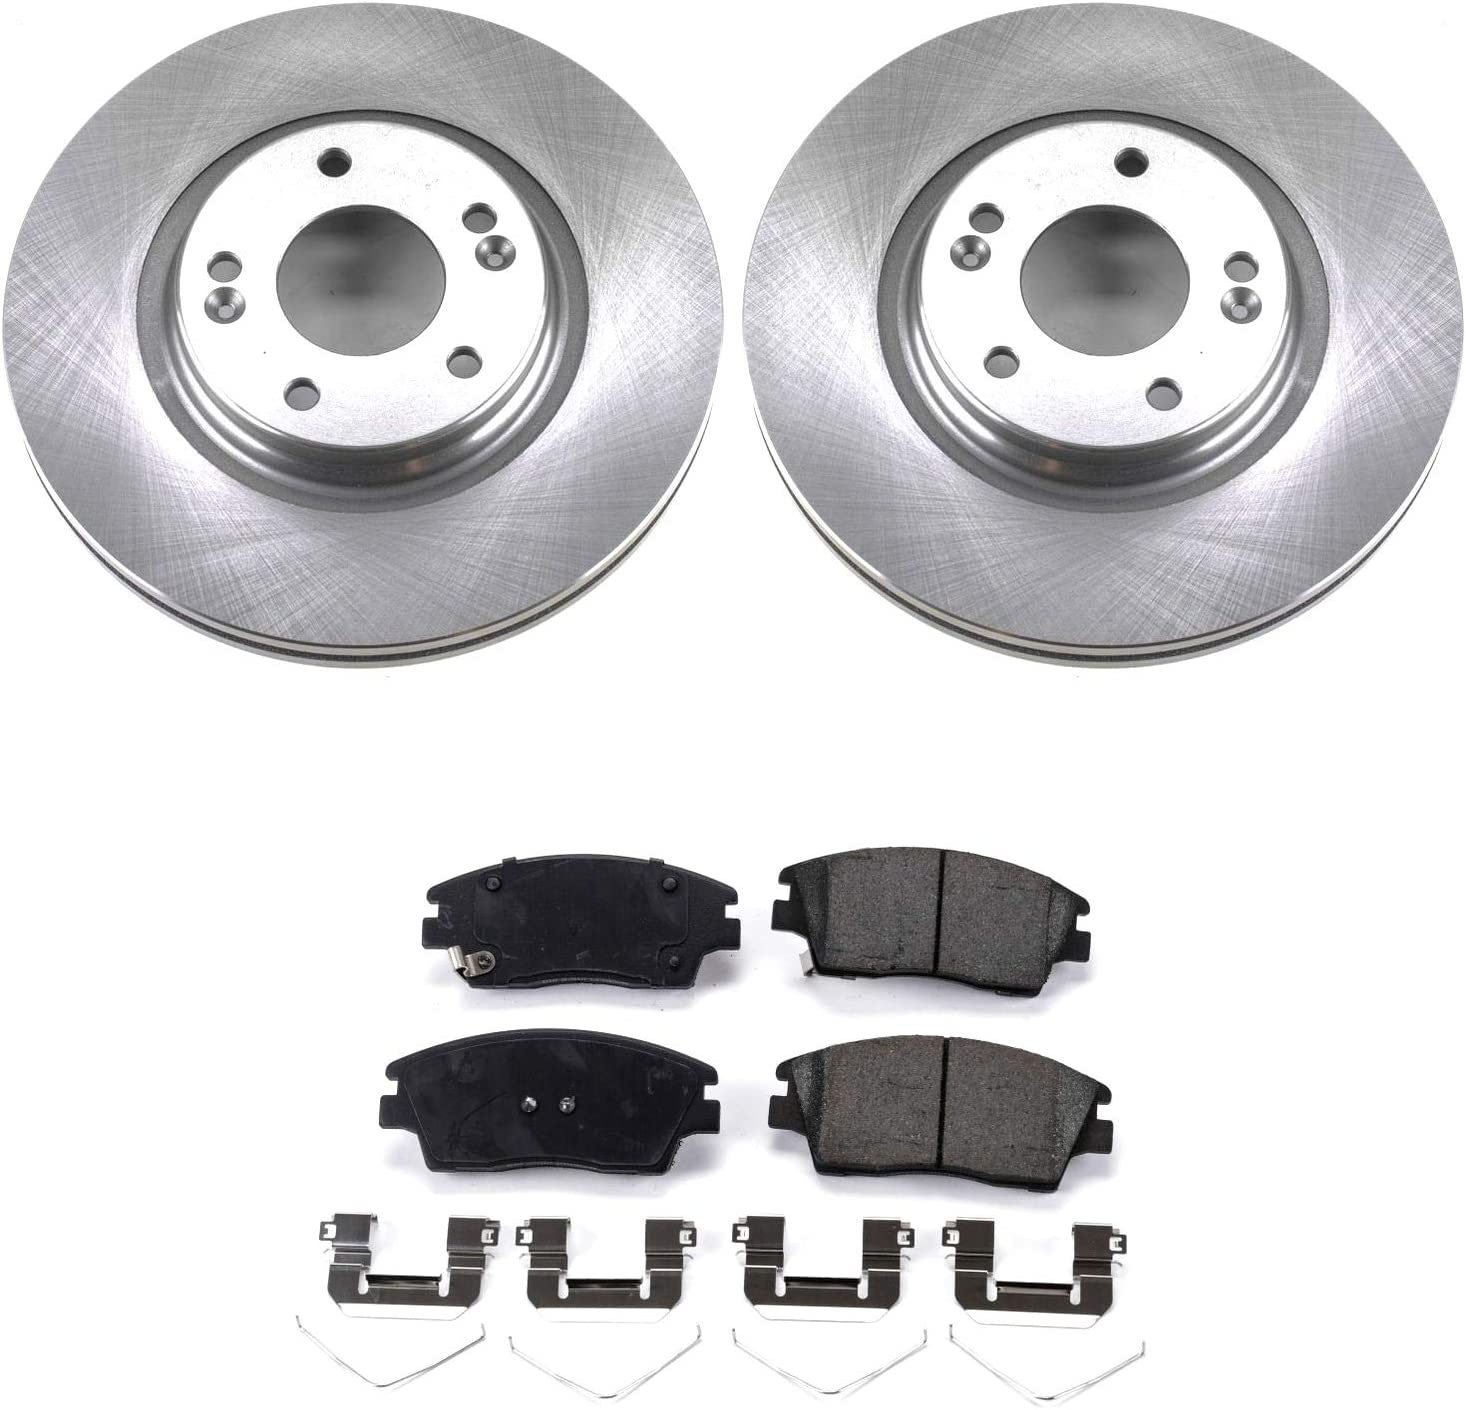 For Both Left and Right One Year Warranty Stirling 2017 for Kia Sportage Rear Premium Quality Disc Brake Rotors And Ceramic Brake Pads -